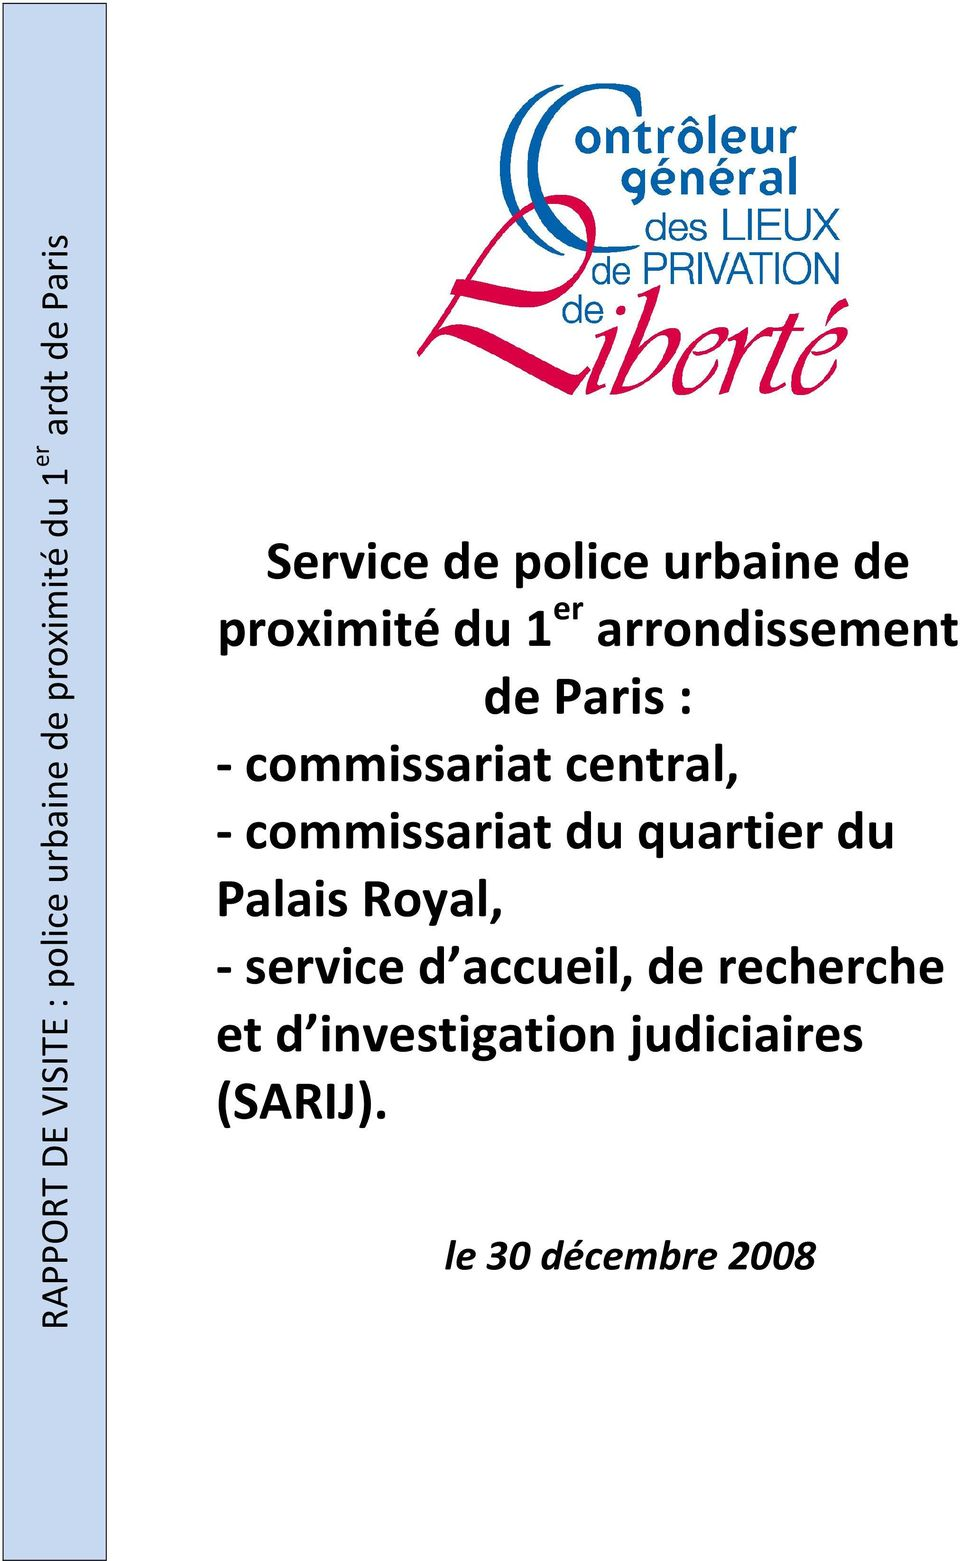 commissariat central, - commissariat du quartier du Palais Royal, - service